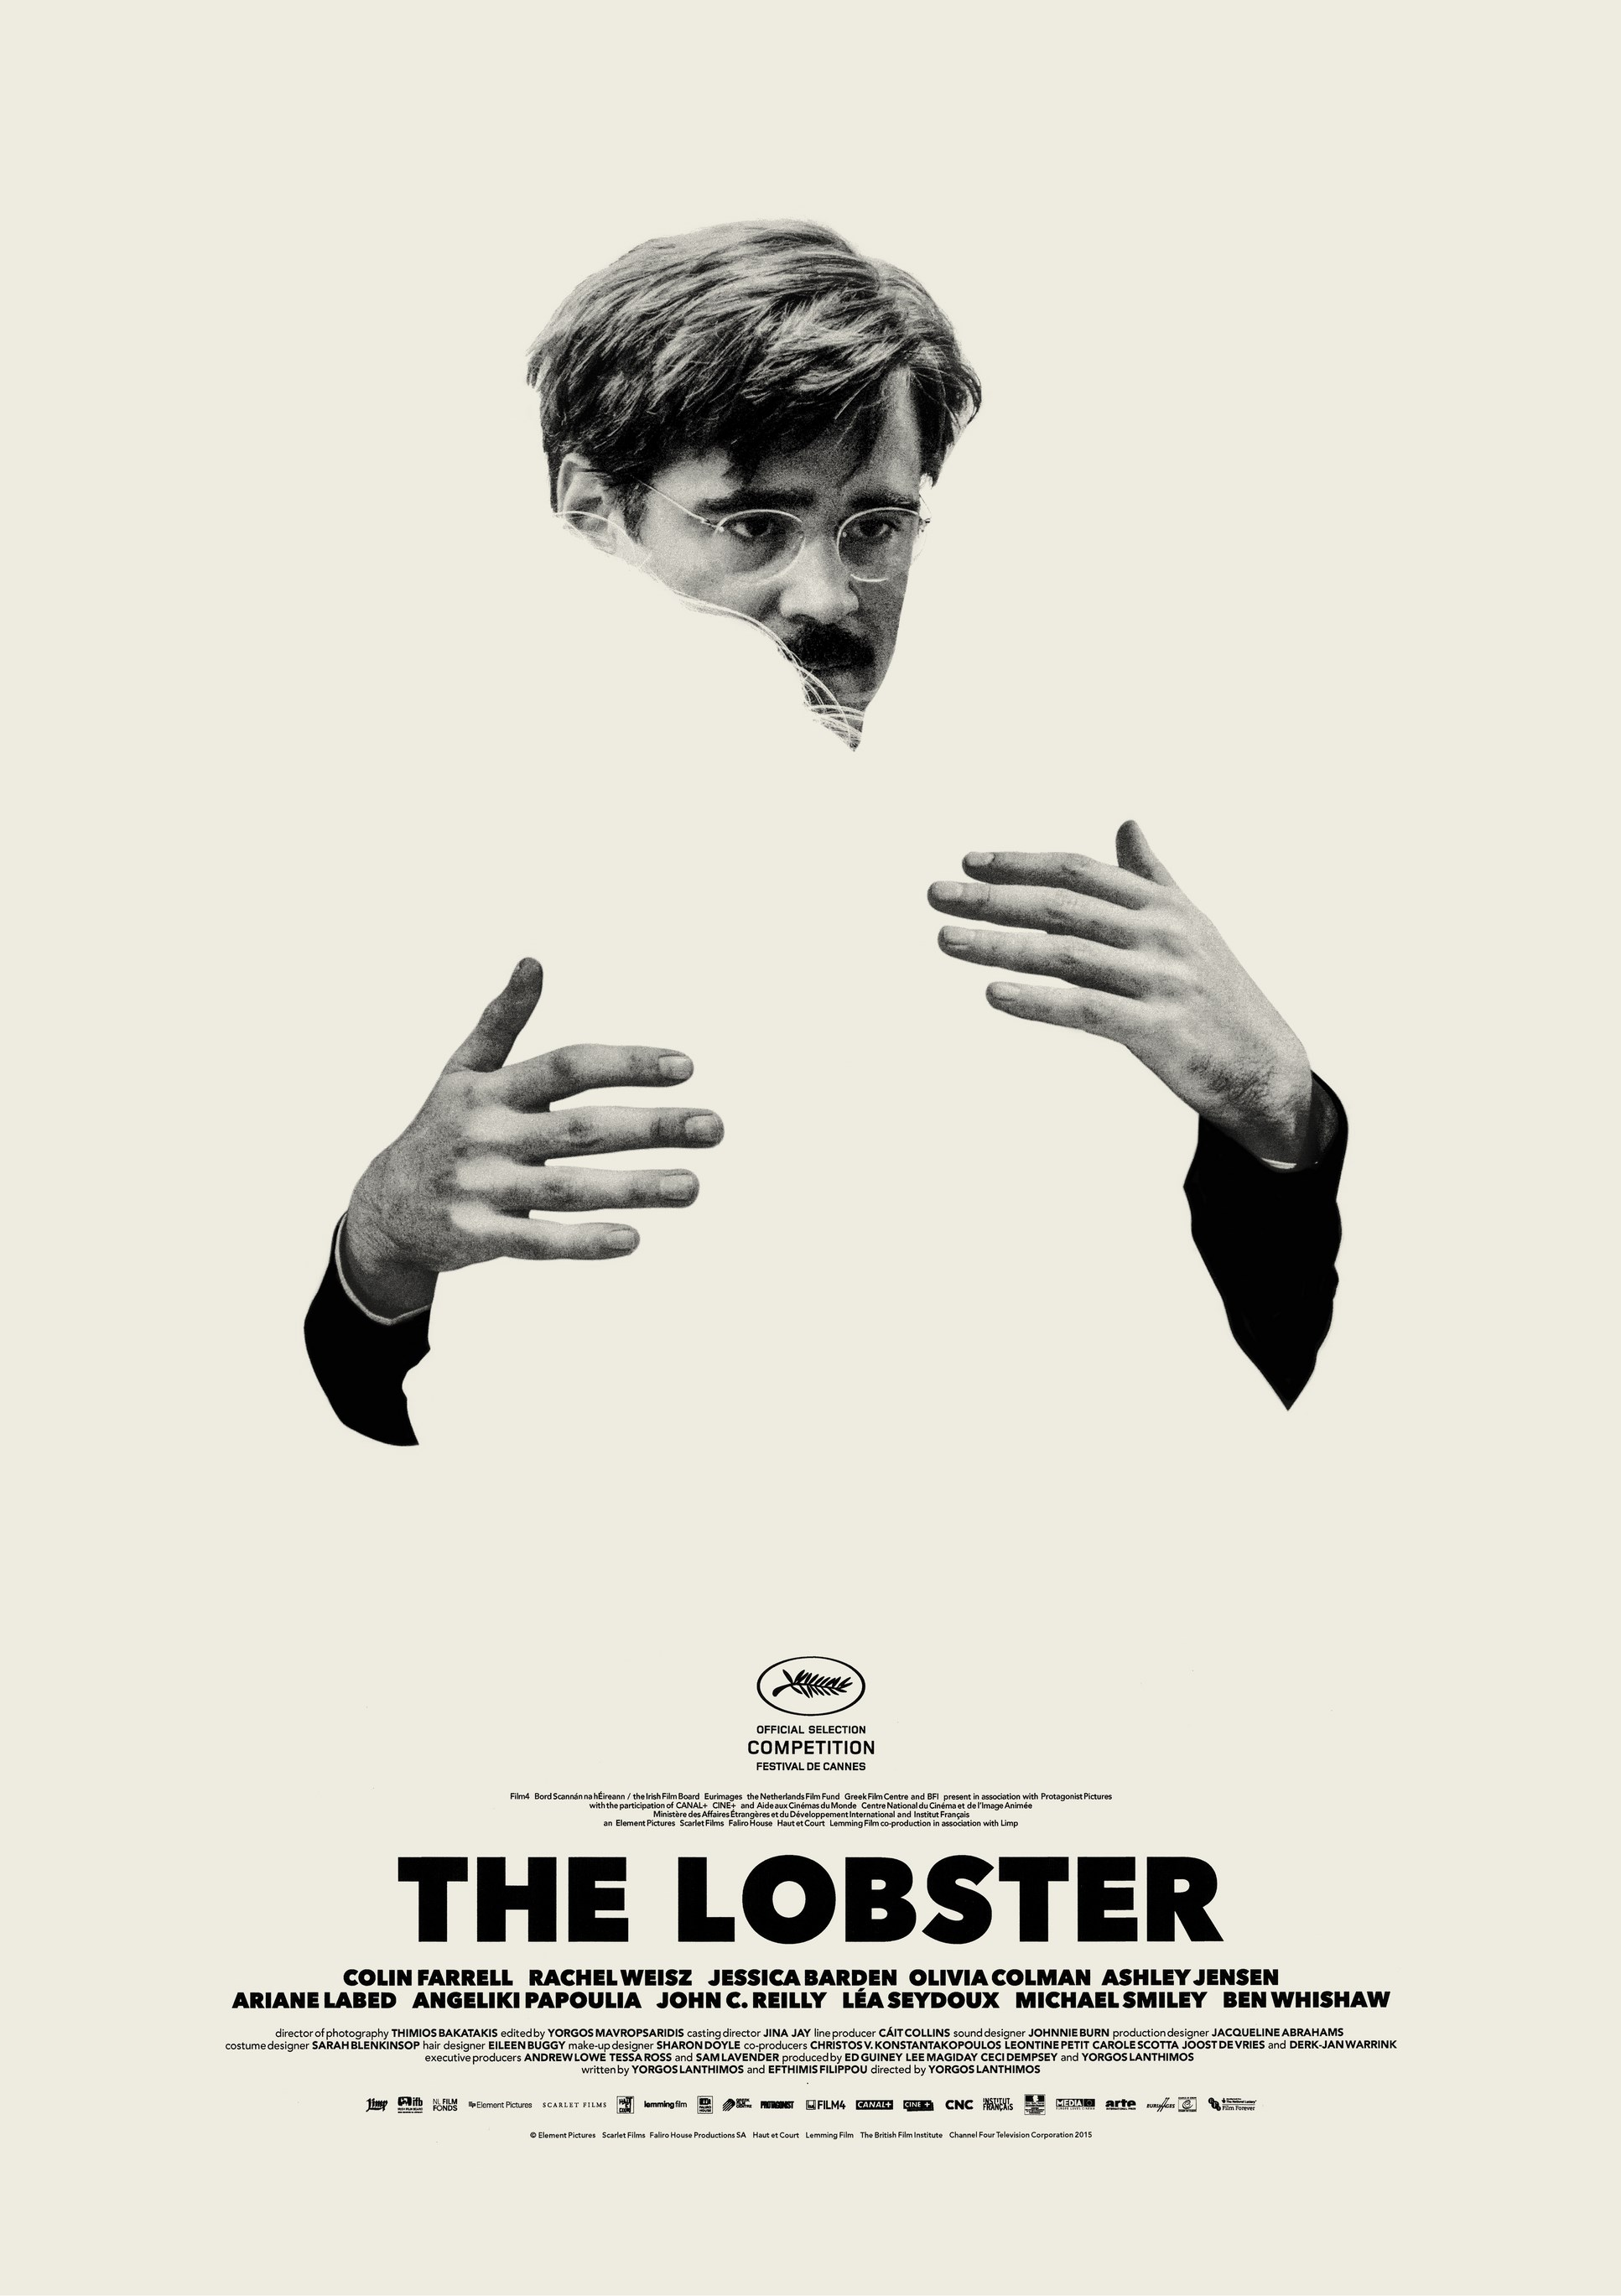 The Lobster - Director: Yorgos LanthimosMusic Supervision: SixtyFour MusicSynopsis: In a dystopian society, single people must find a mate within 45 days or be transformed into an animal of their choice.Academy Awards Nominee:Best Original ScreenplayGolden Globes Nominee:Best Performance by an ActorBAFTA Awards 2017 Nominee: Best British FilmCannes Film Festival 2015 Winner: Jury PrizeCannes Film Festival 2015 Winner: Palm Dog - Jury PrizeCannes Film Festival 2015 Winner: Queer Palm - Special Mention